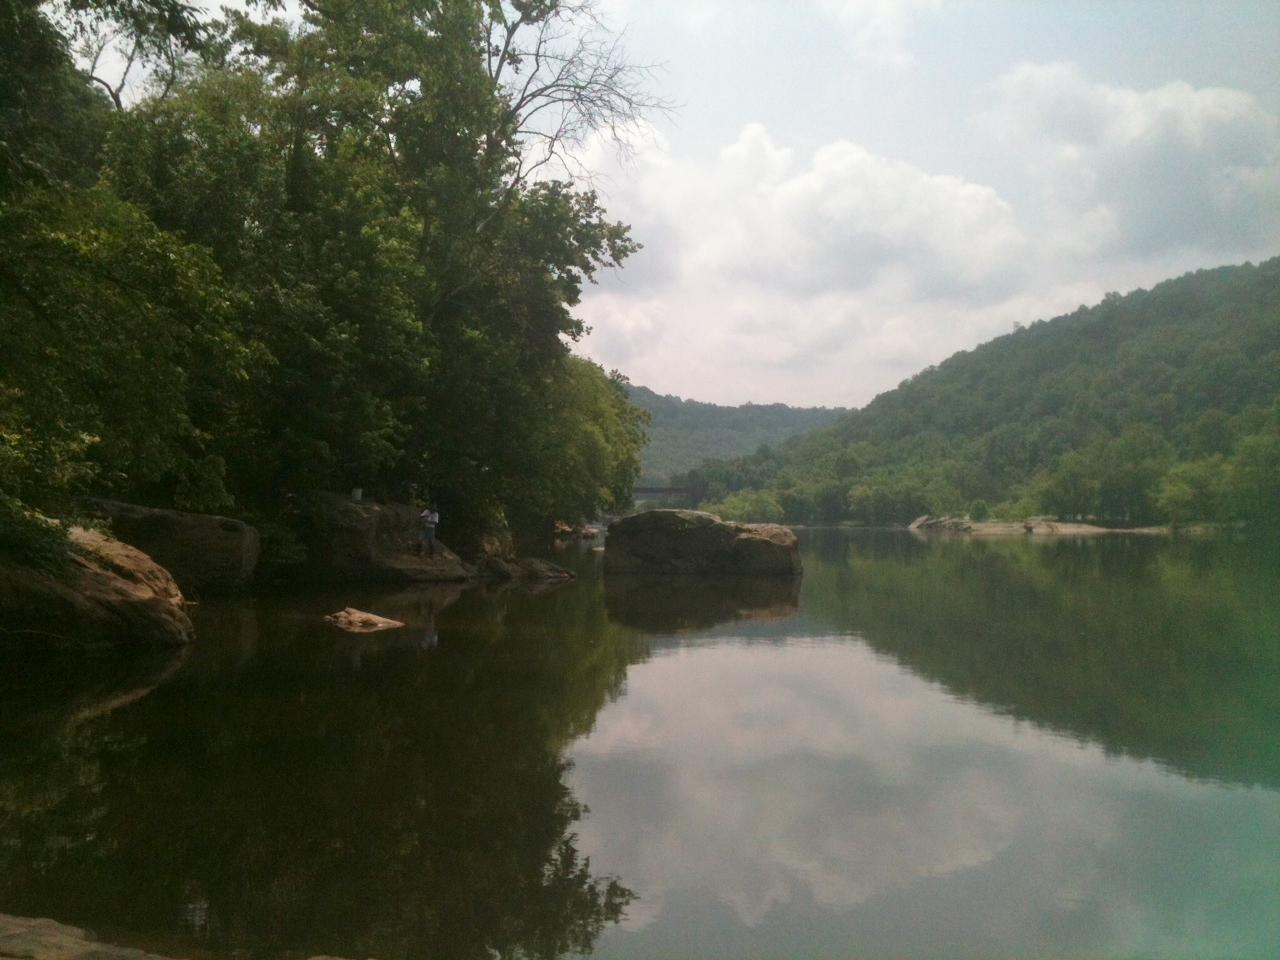 gauley bridge christian singles A searchable directory of christian churches in gauley bridge, west virginia with links to church profiles and maps you may also see a list of all churches in gauley bridge, west virginia join the other 109816 churches in our directory.